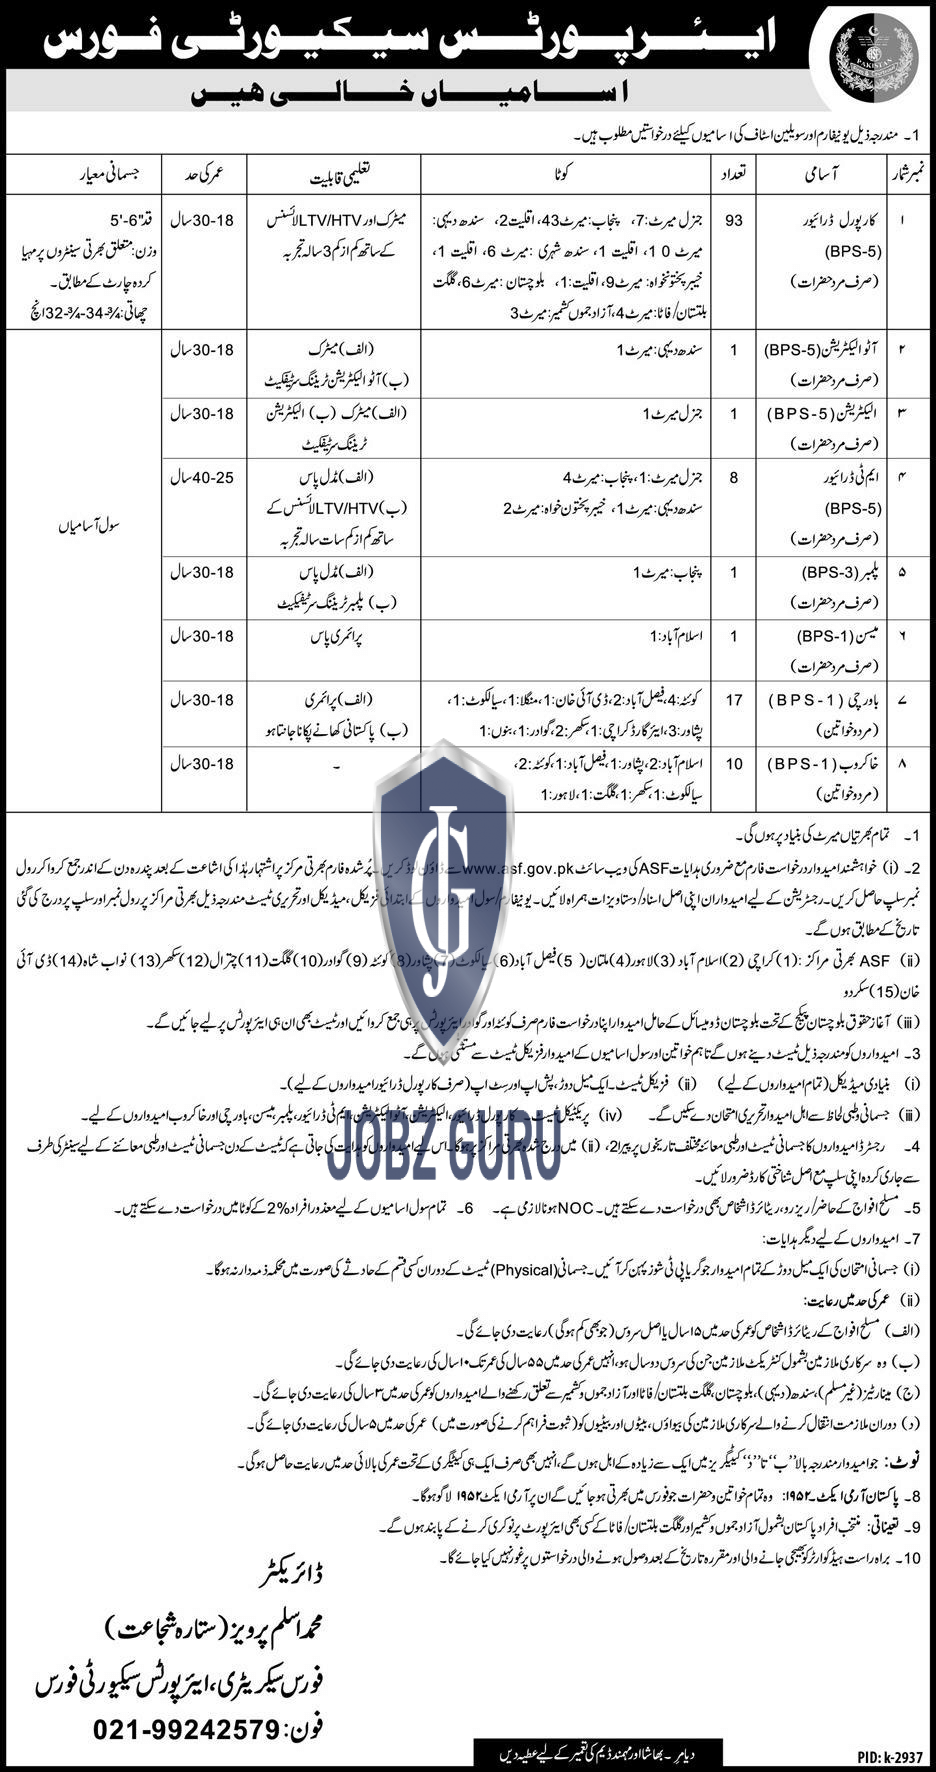 Airport Security Force Jobs 2019 Download Application Form in All over in Pakistan on February, 2019 | Government